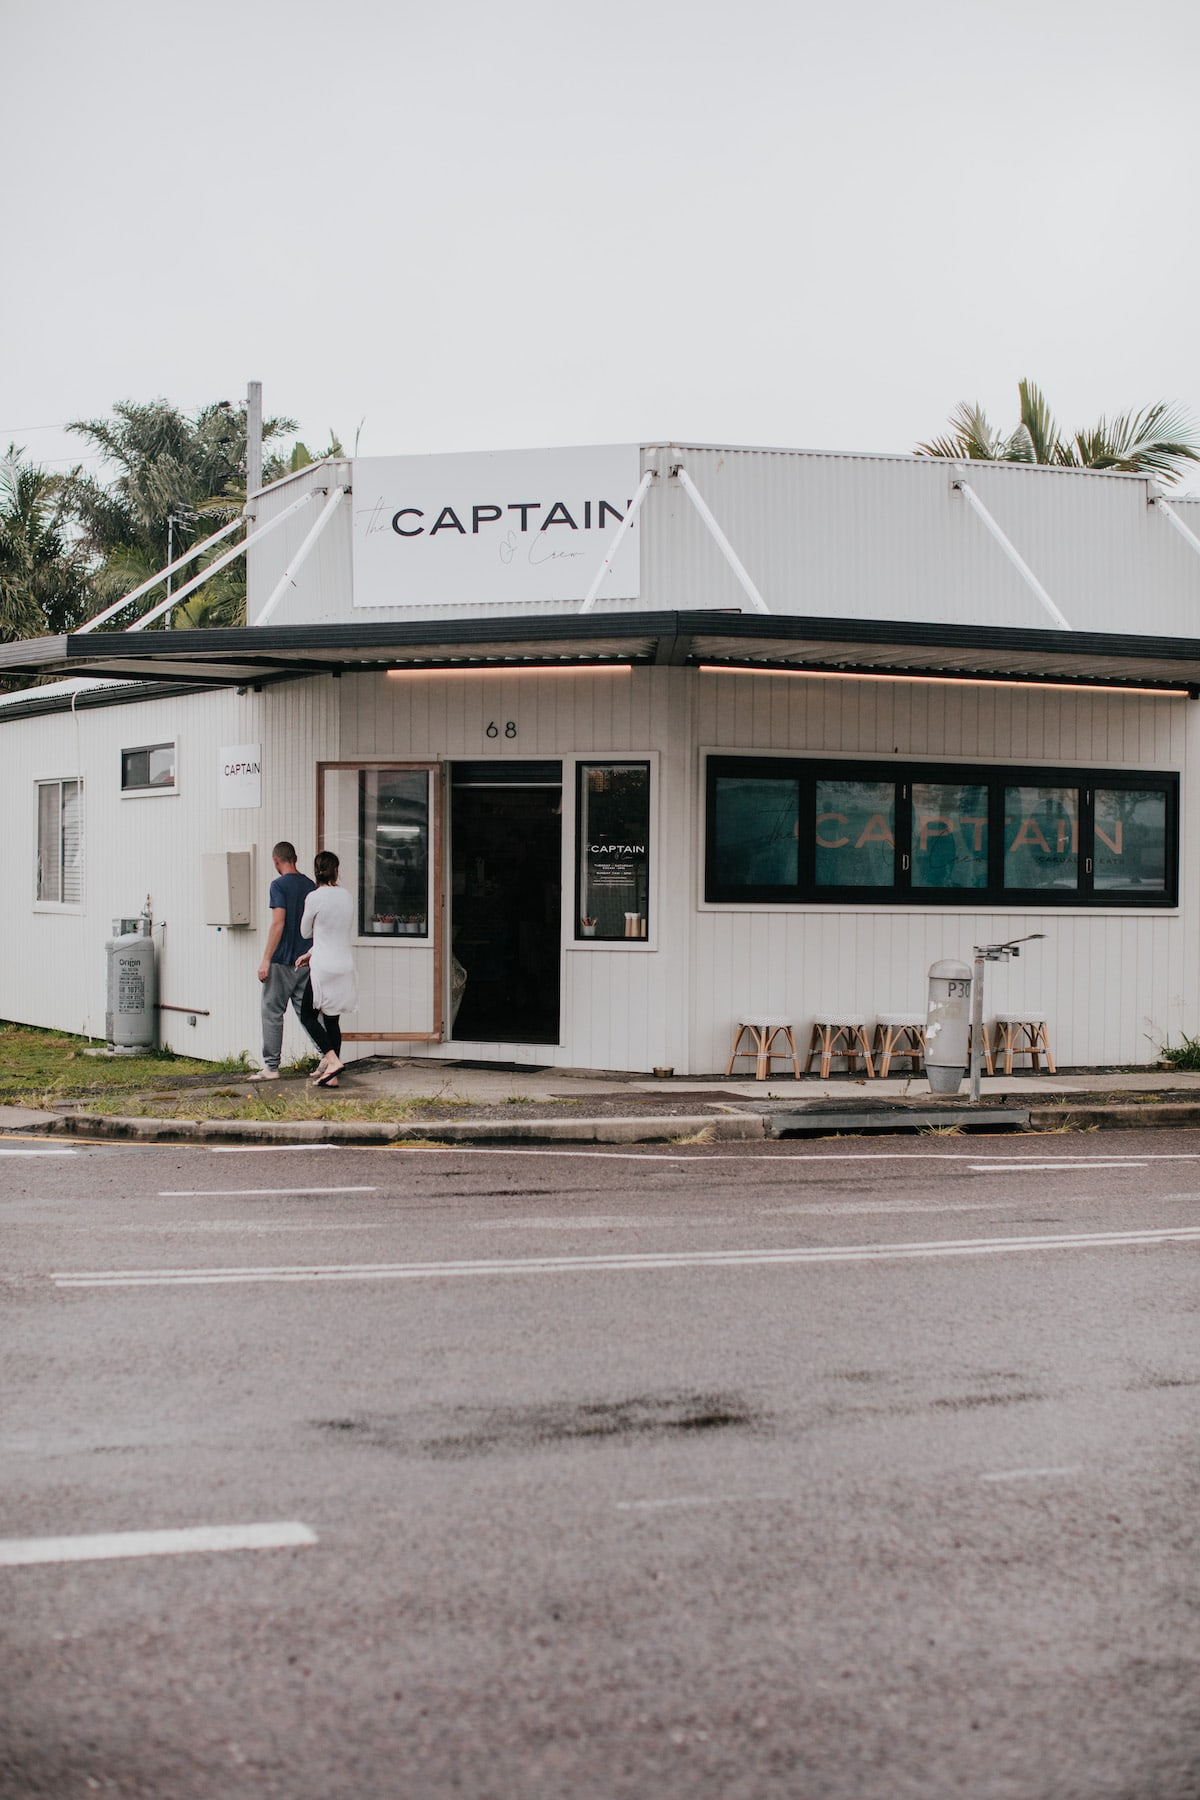 the captain and crew cafe marks point lake macquarie